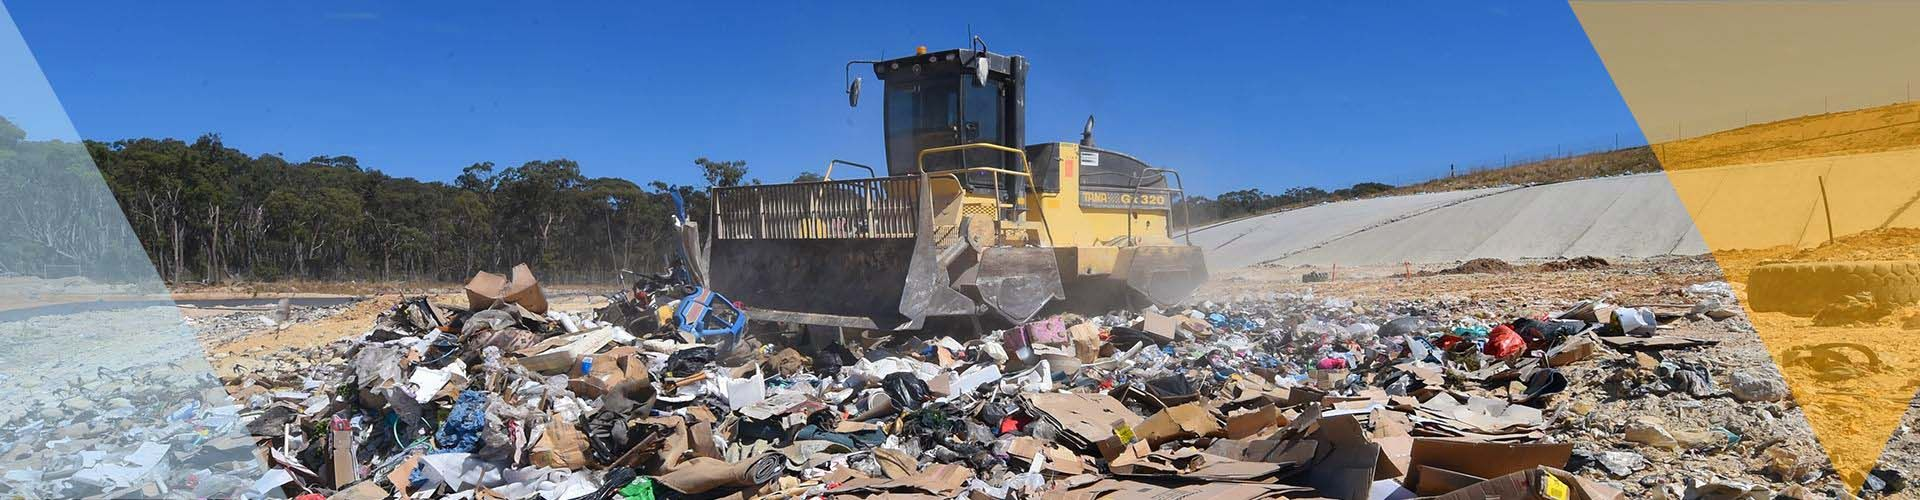 Time to action wasted landfill levy opportunities Image